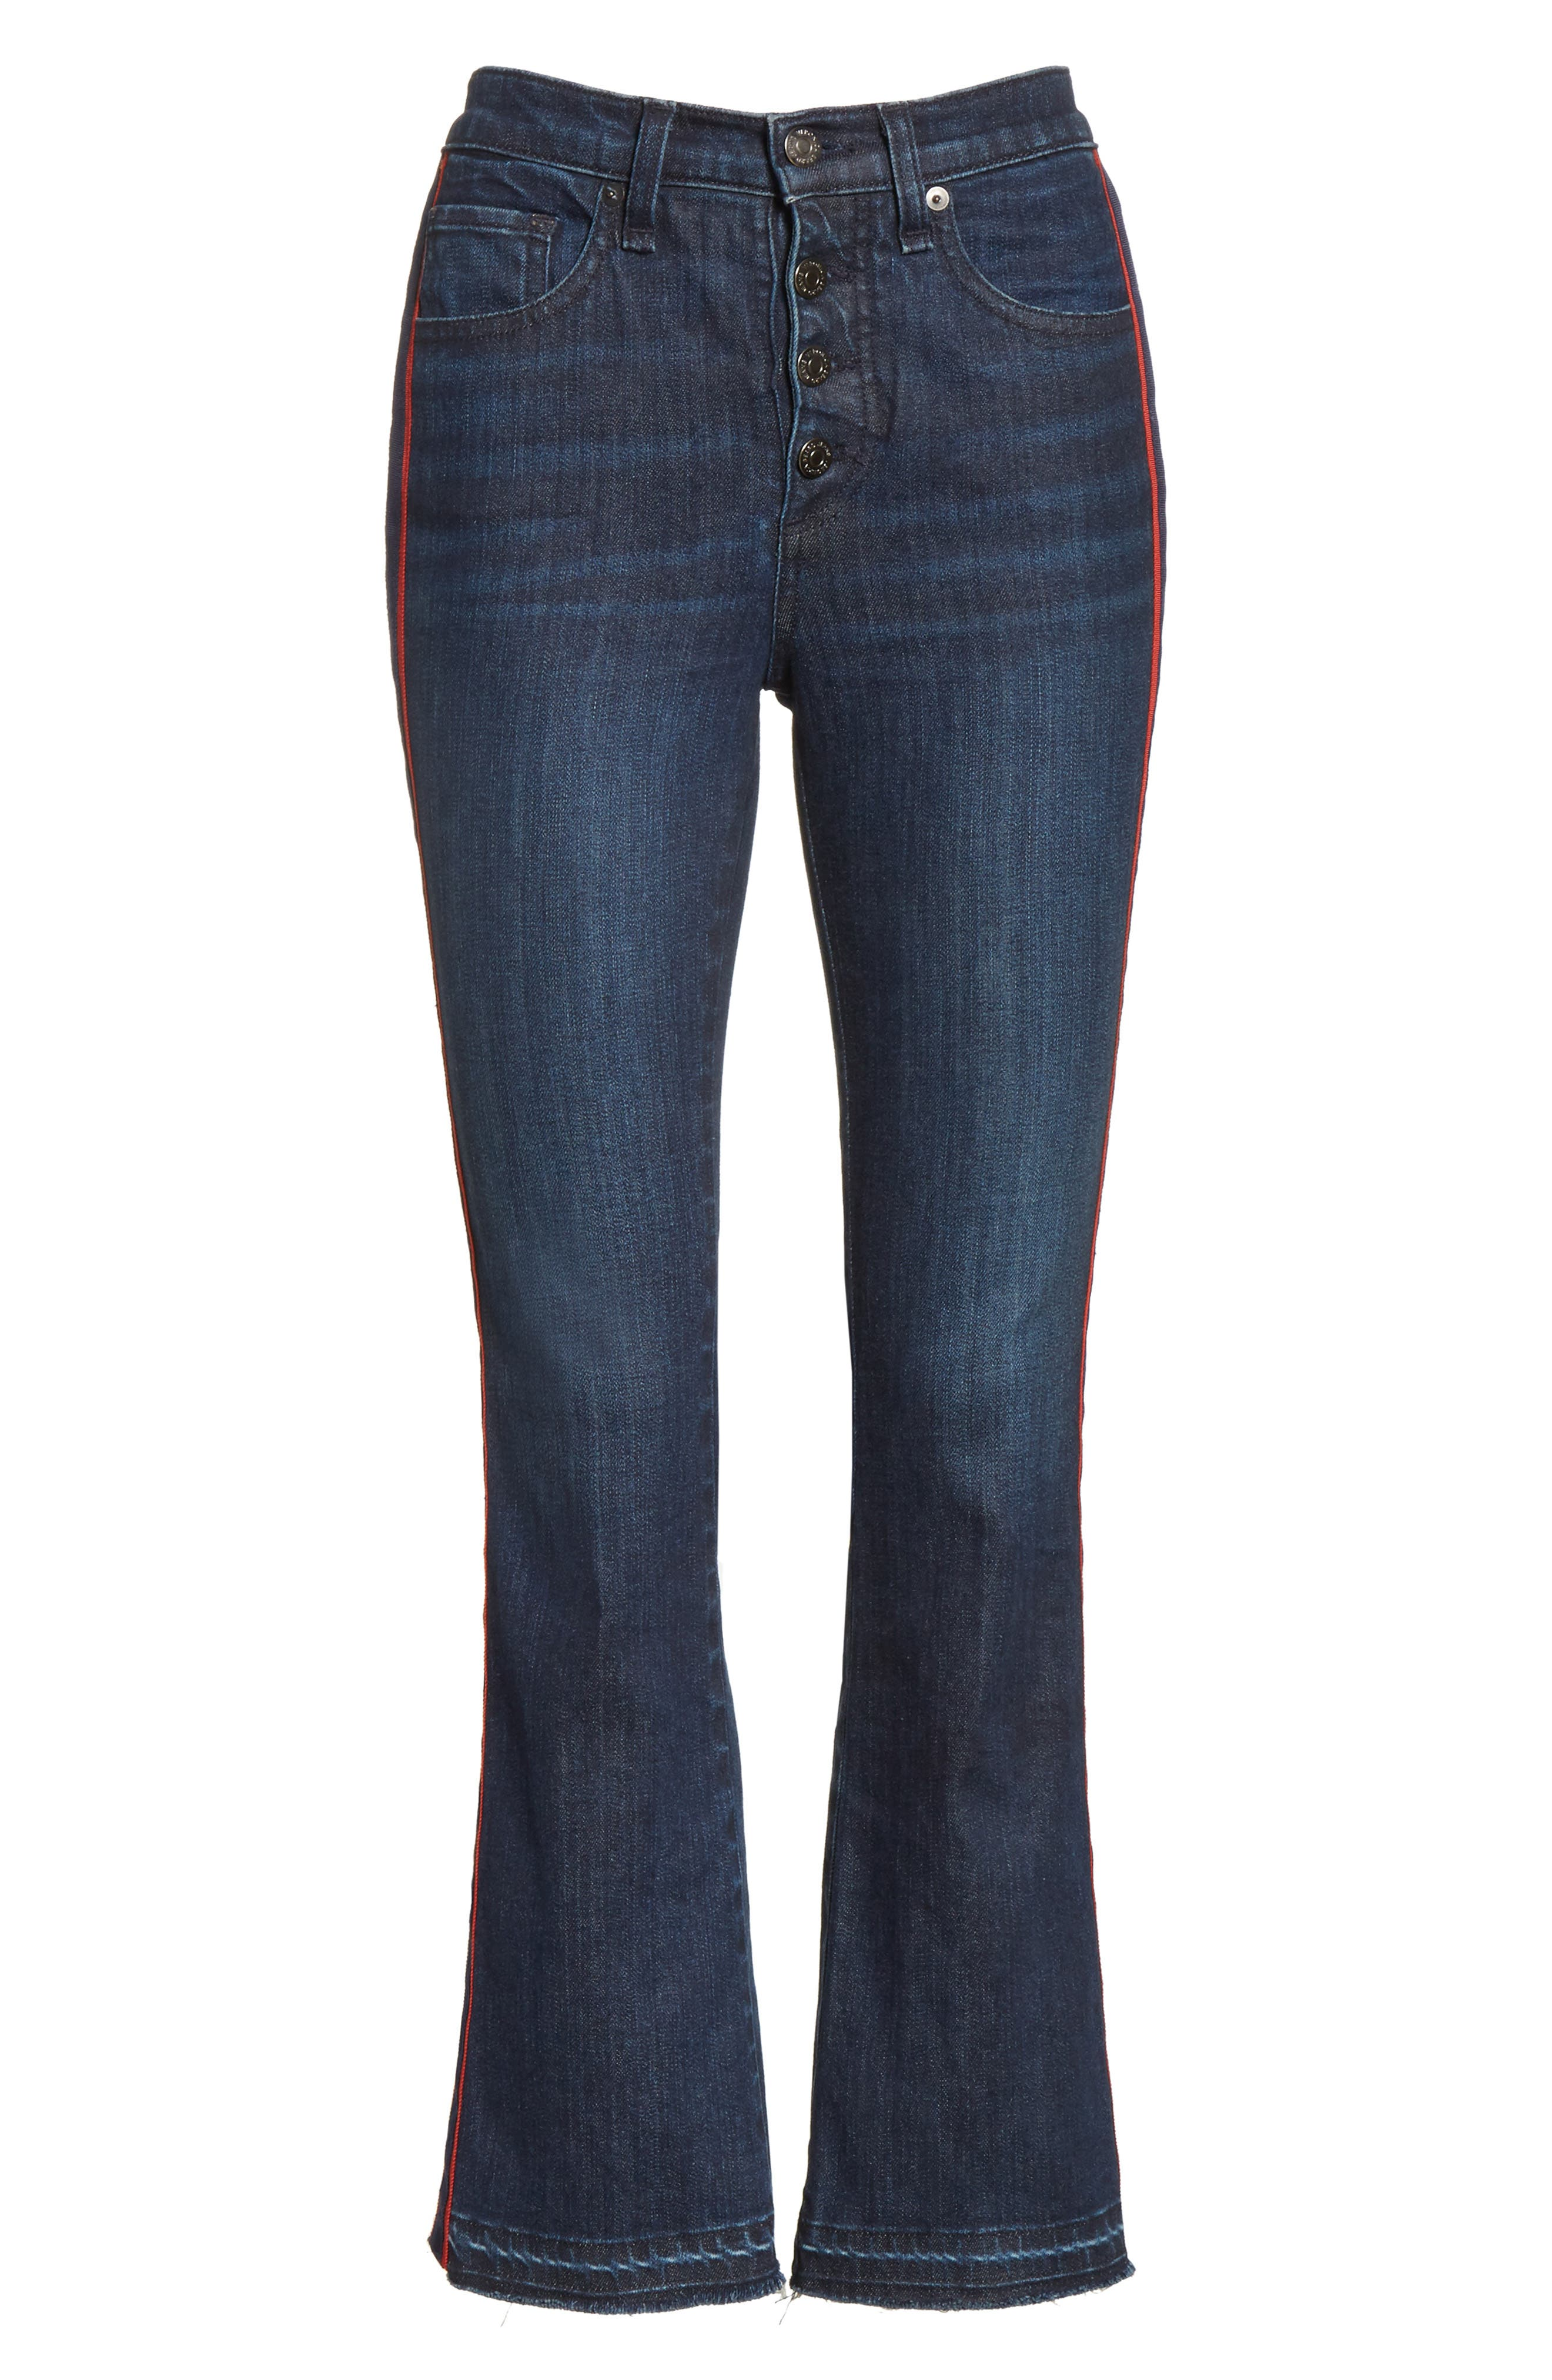 VERONICA BEARD, Carolyn Tuxedo Stripe Baby Boot Crop Jeans, Alternate thumbnail 6, color, MIDNIGHT FRAY/ RED